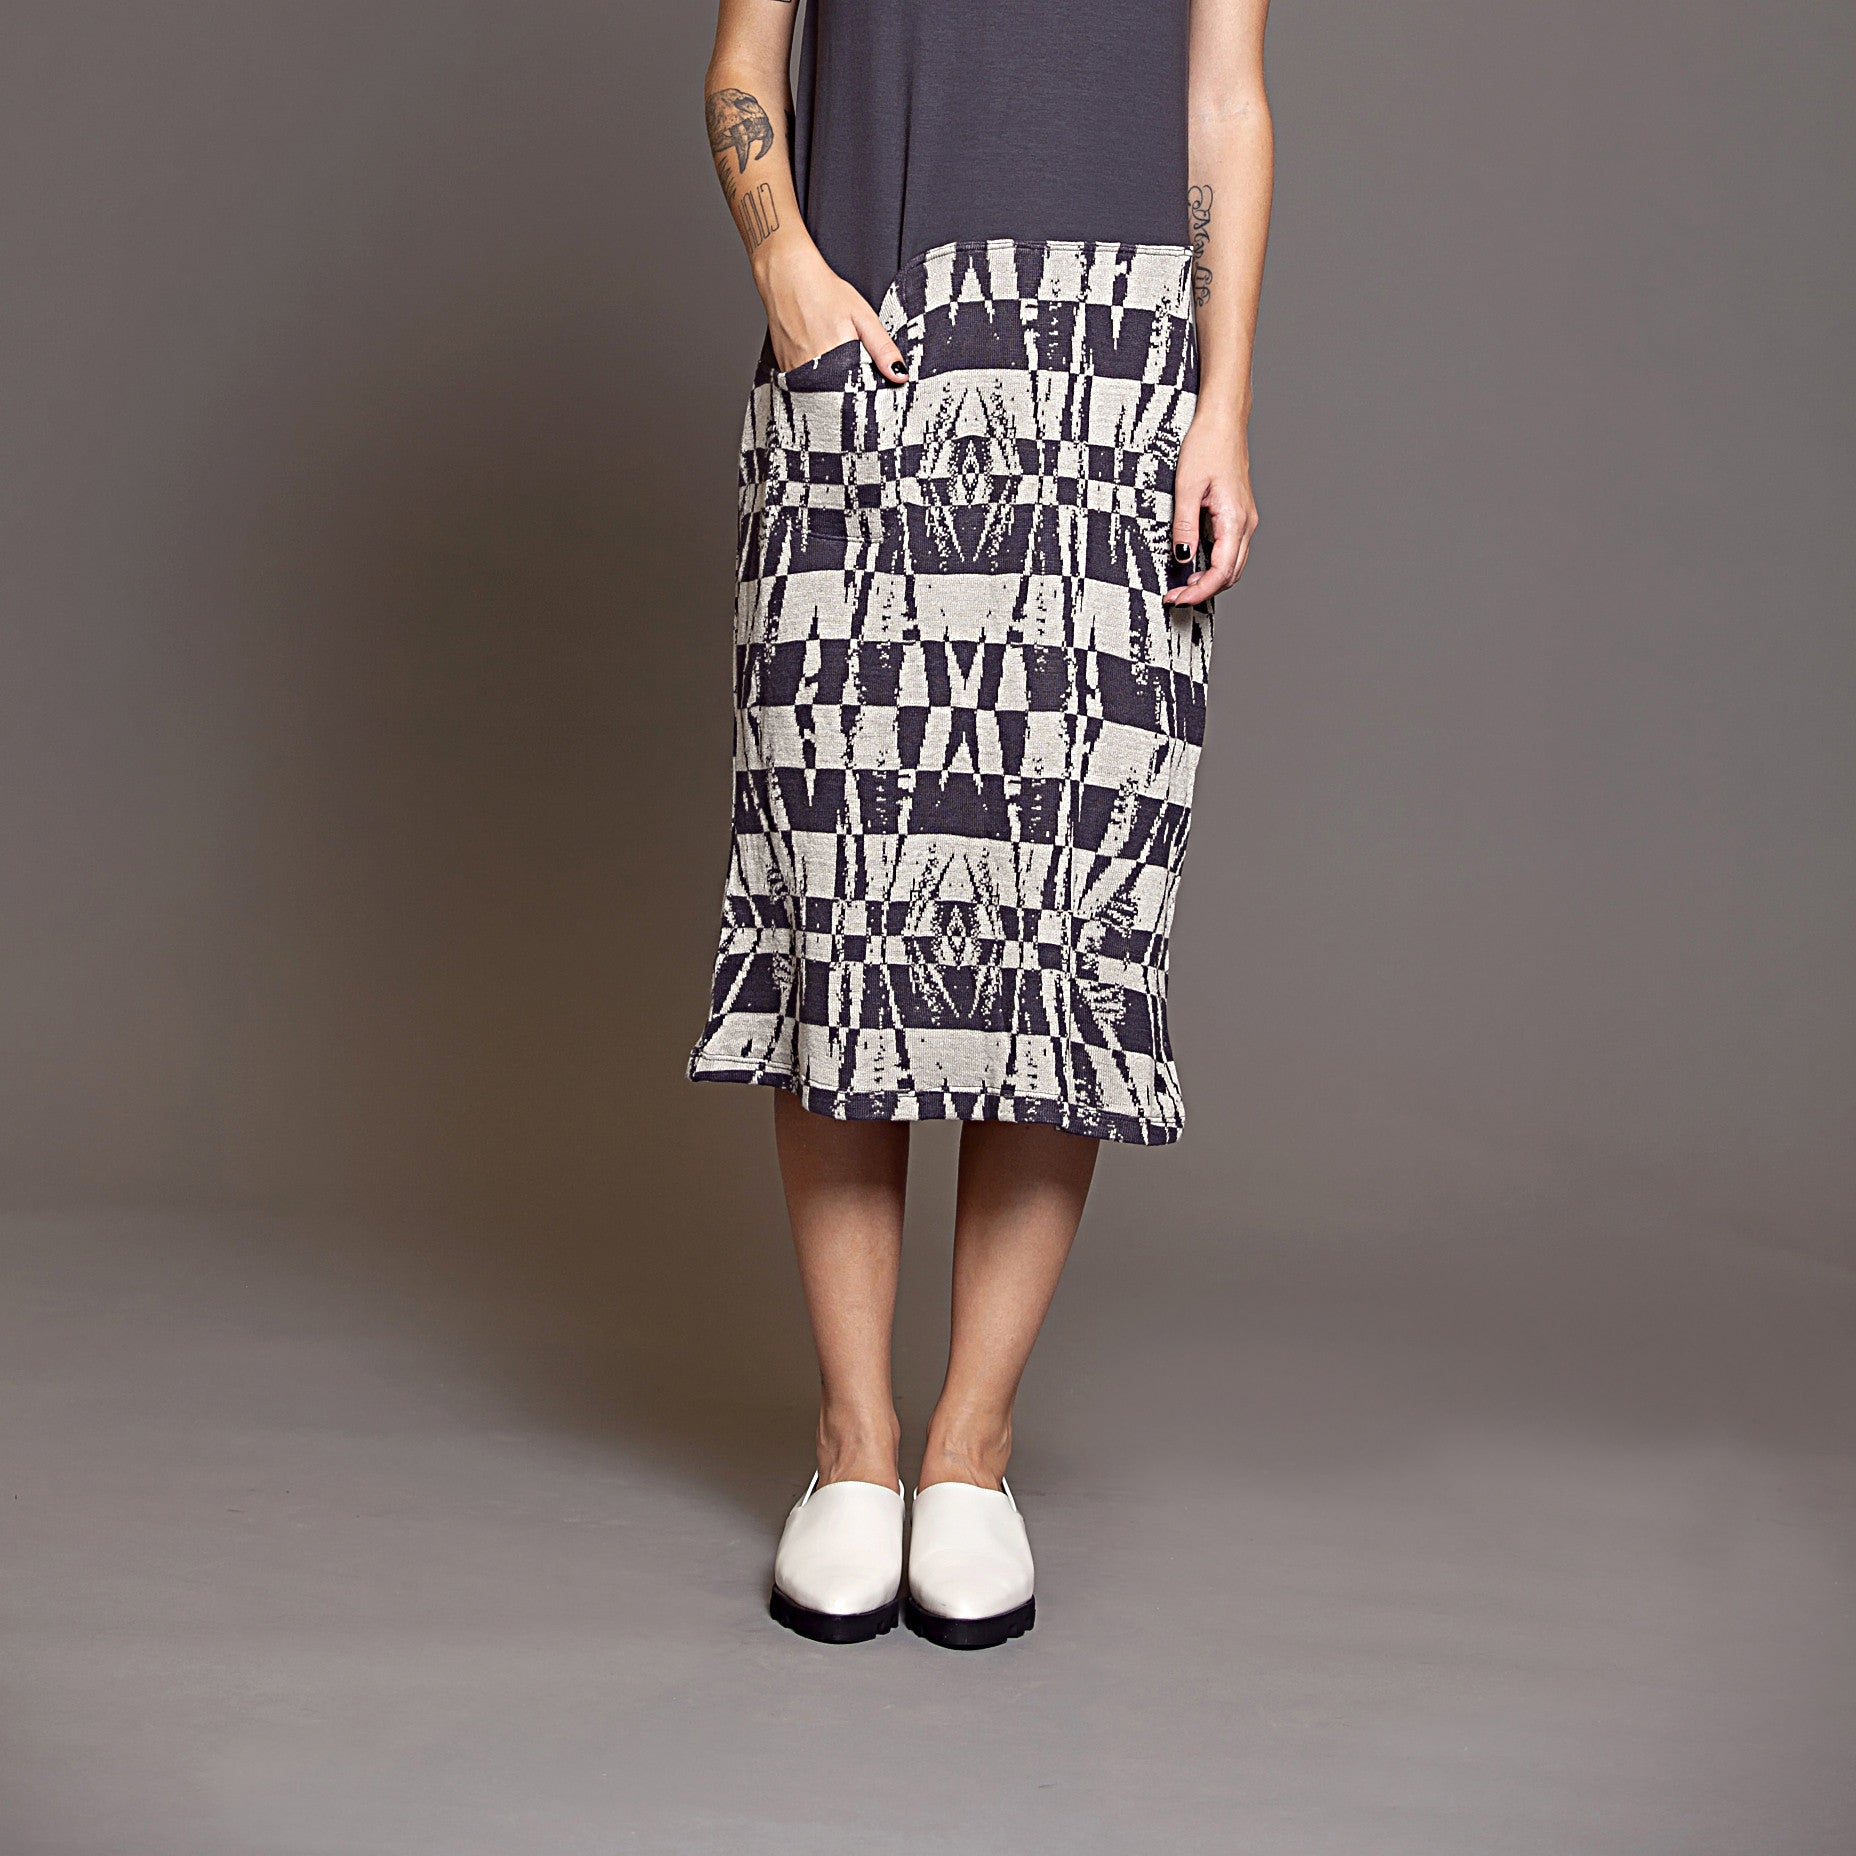 Sample sale- Jersey and Jacquard knit pocket dress size M color steel and stone - DuendeFashion  - 6